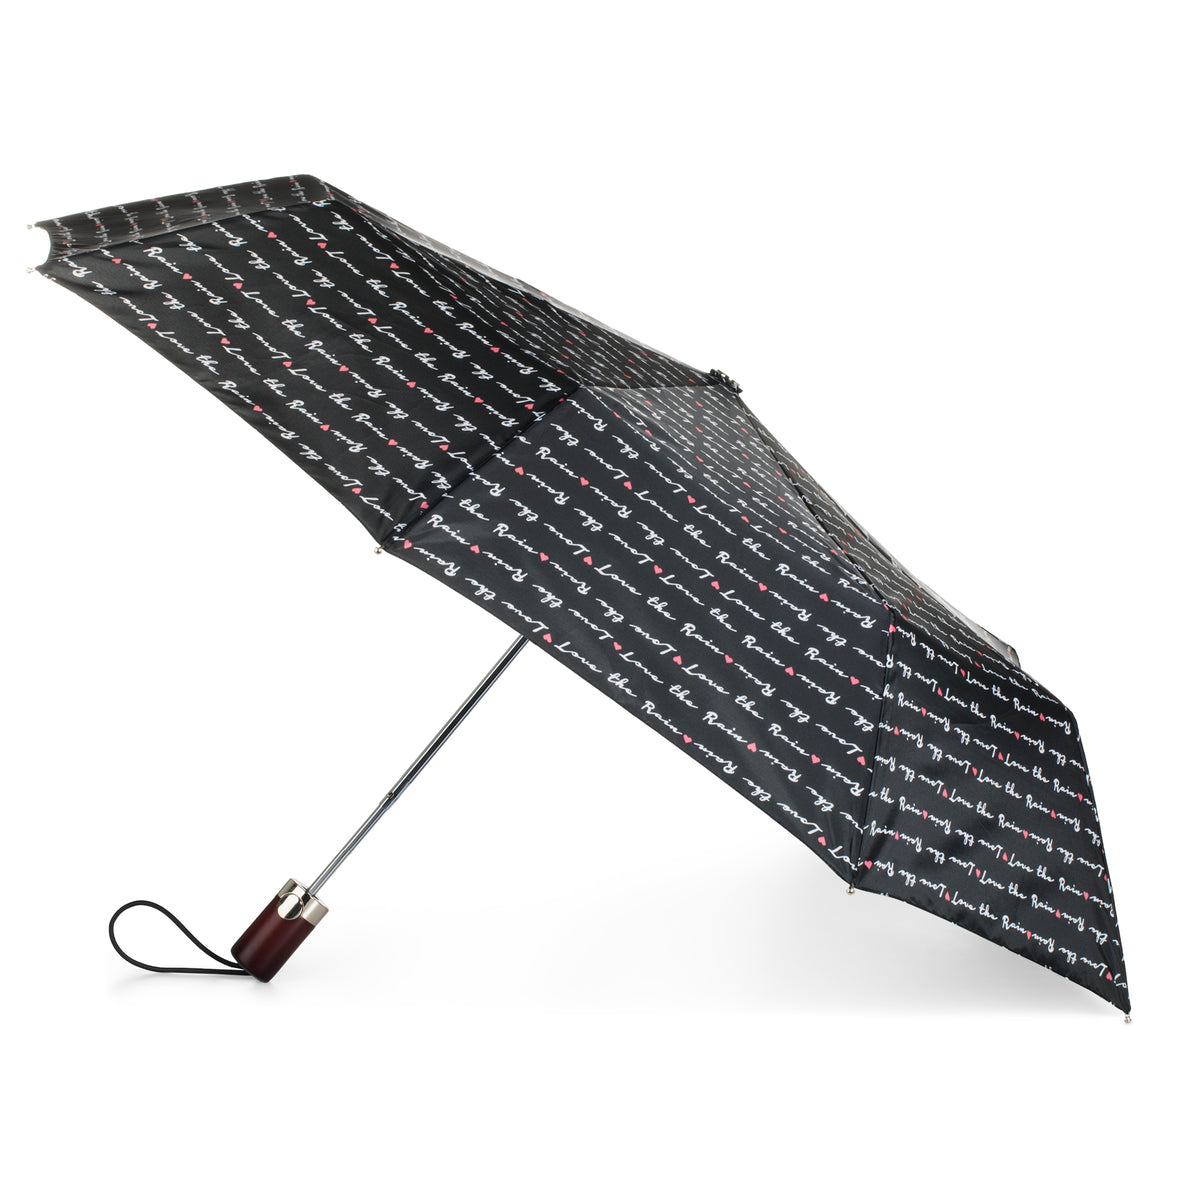 Limited-Edition Auto Open Umbrella NeverWet® love letter side view open